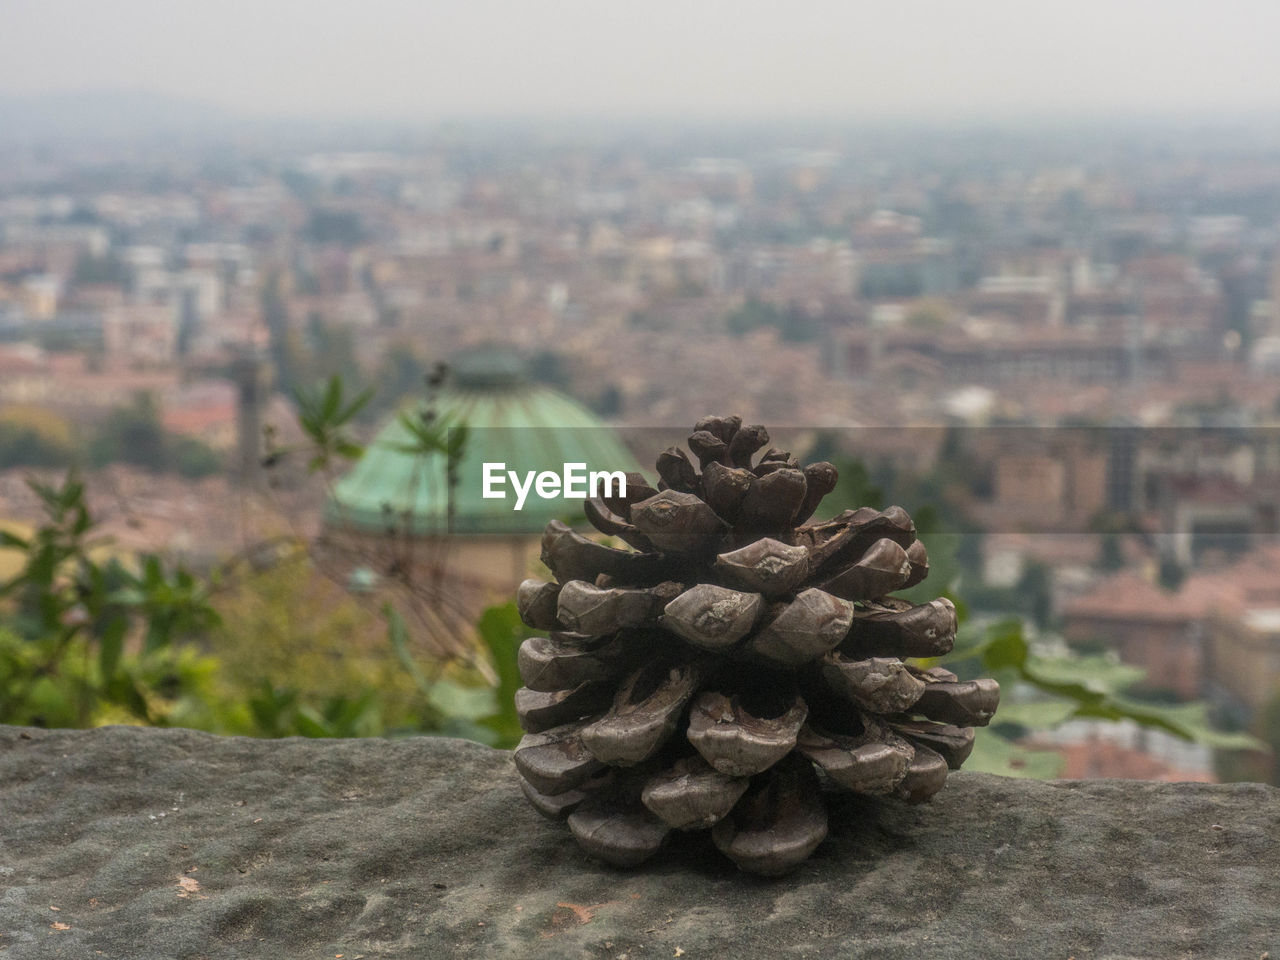 city, architecture, building exterior, focus on foreground, built structure, nature, no people, cityscape, sky, day, building, close-up, outdoors, plant, pine cone, green color, growth, tree, landscape, pattern, coniferous tree